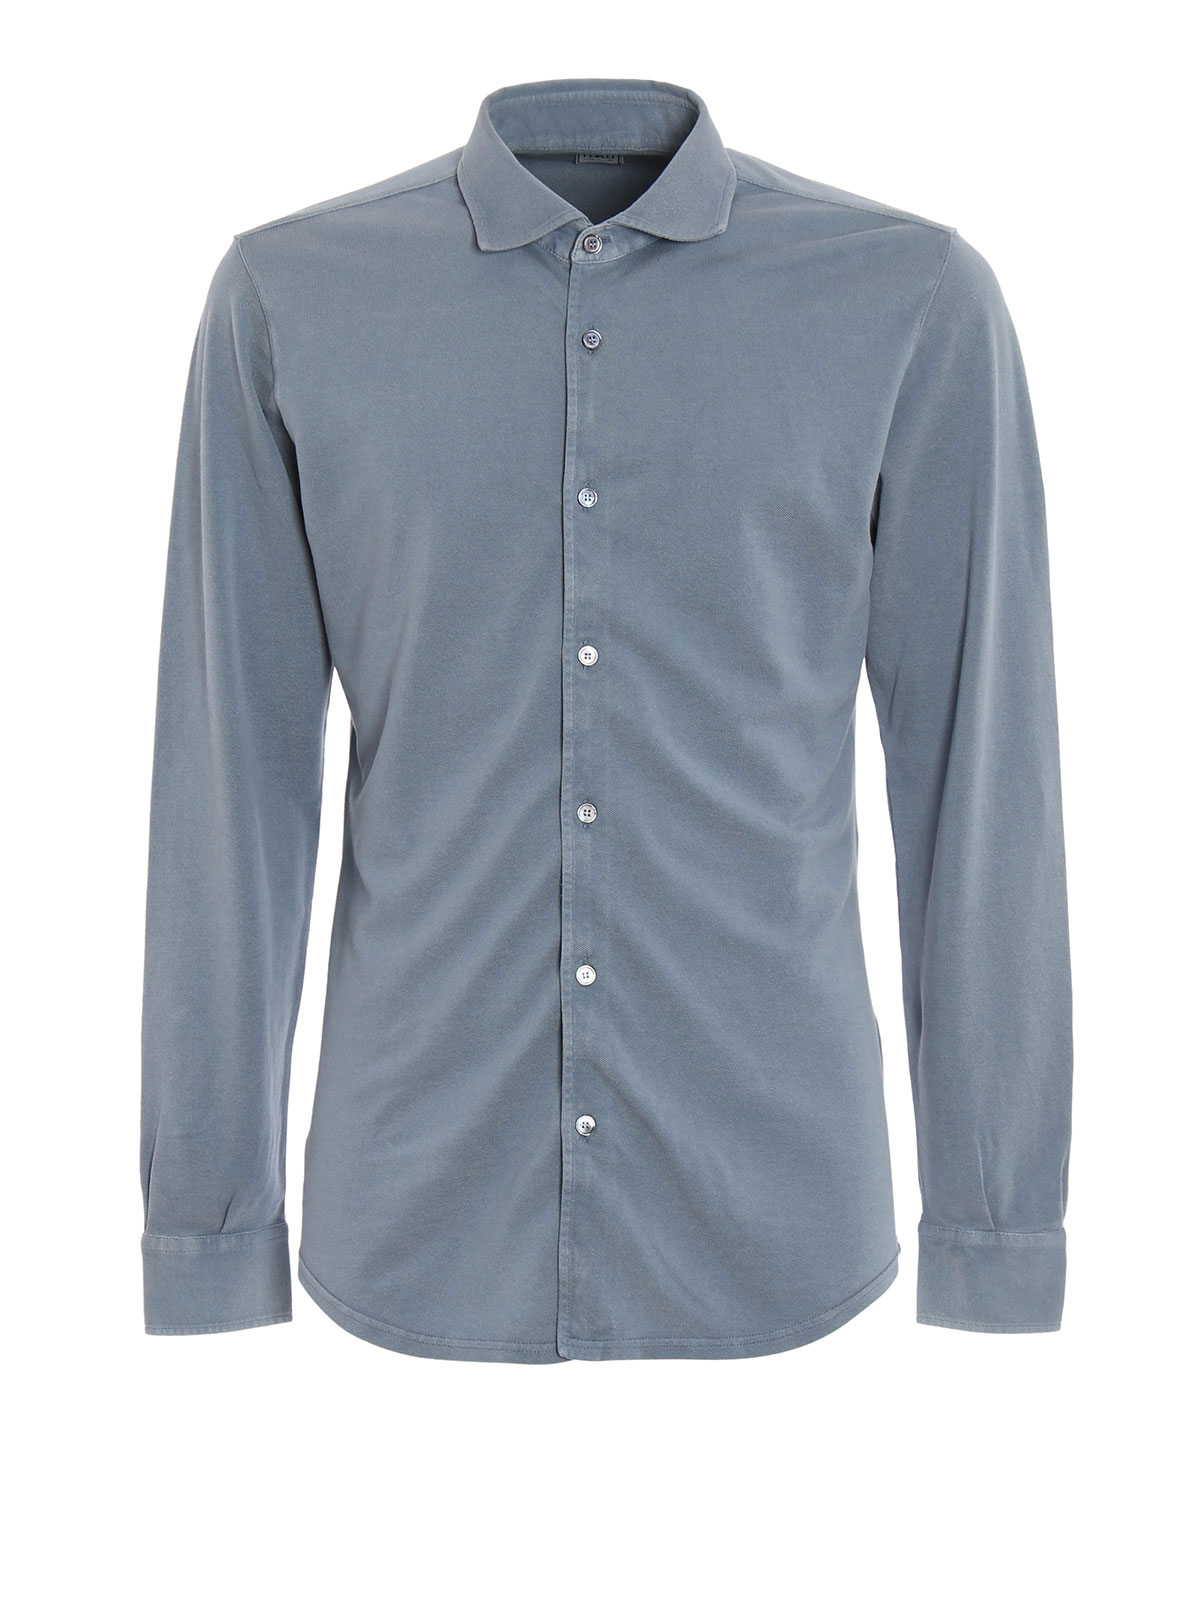 SHIRTS - Shirts Fedeli Clearance 2018 Unisex Sale Online Hot Sale Shop For Online Cheap Shop For 2M9QuK